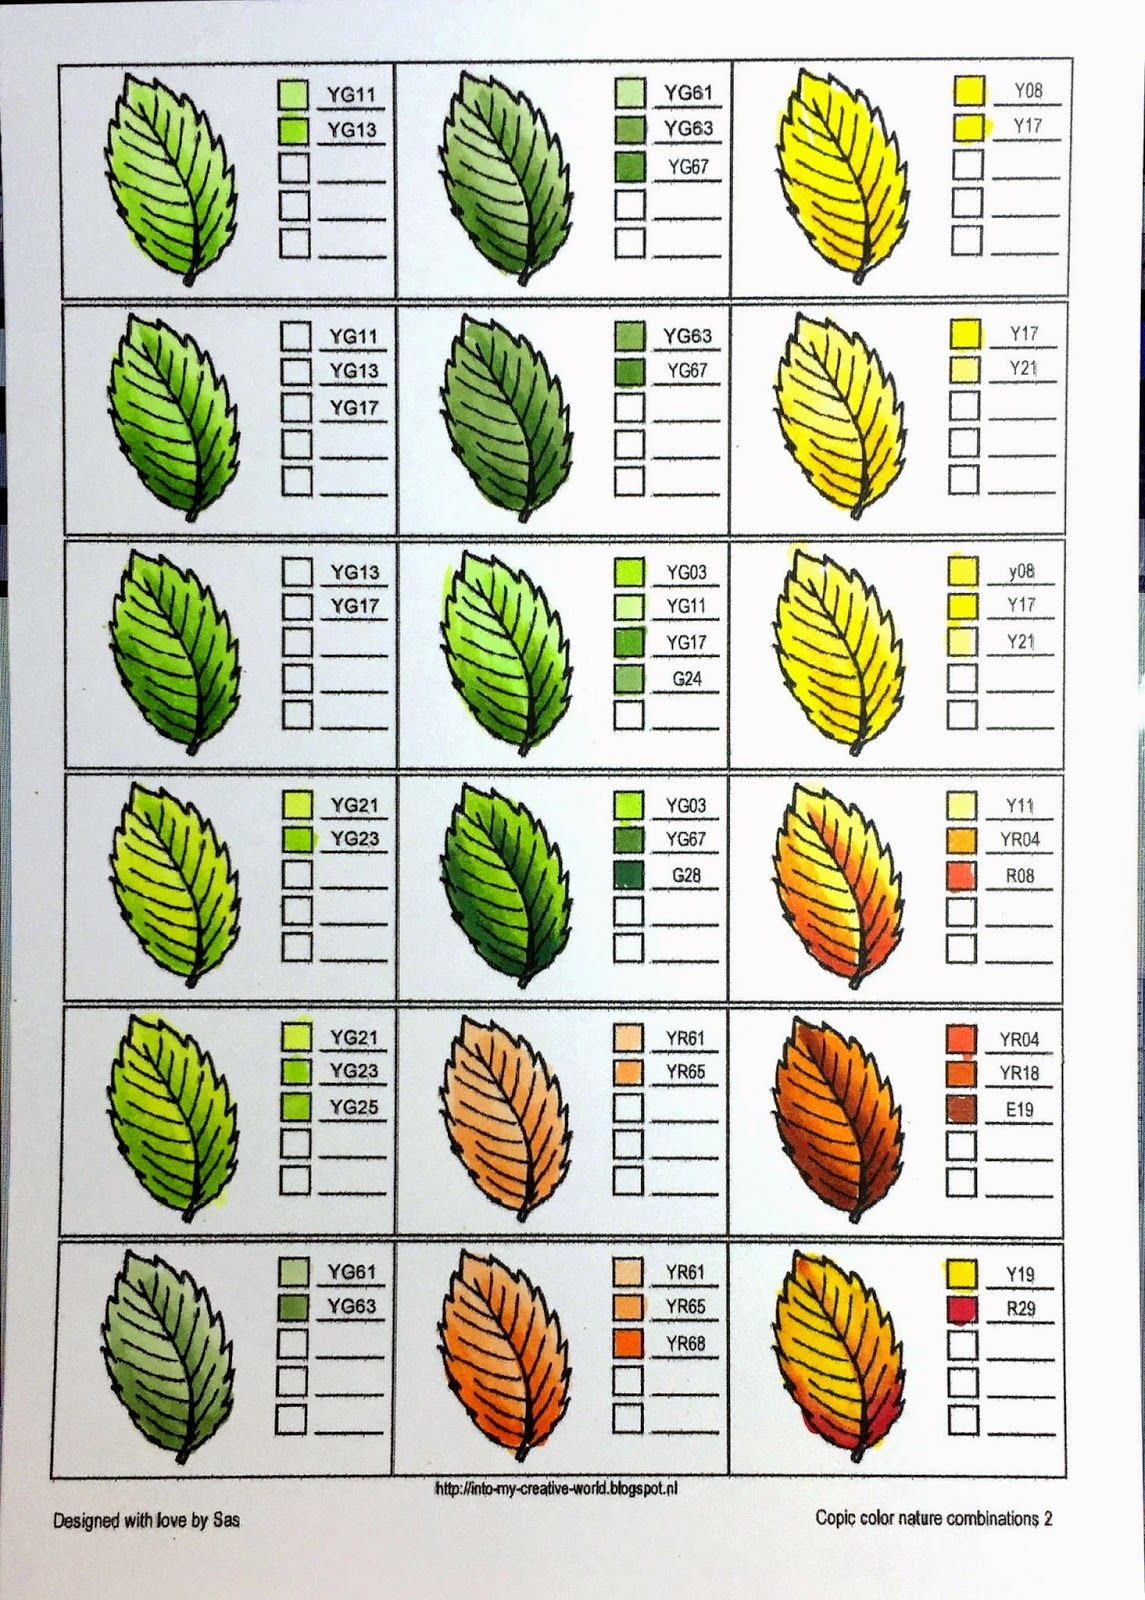 Coloring nature with Copics - leaves - Crafting For Holidays ...